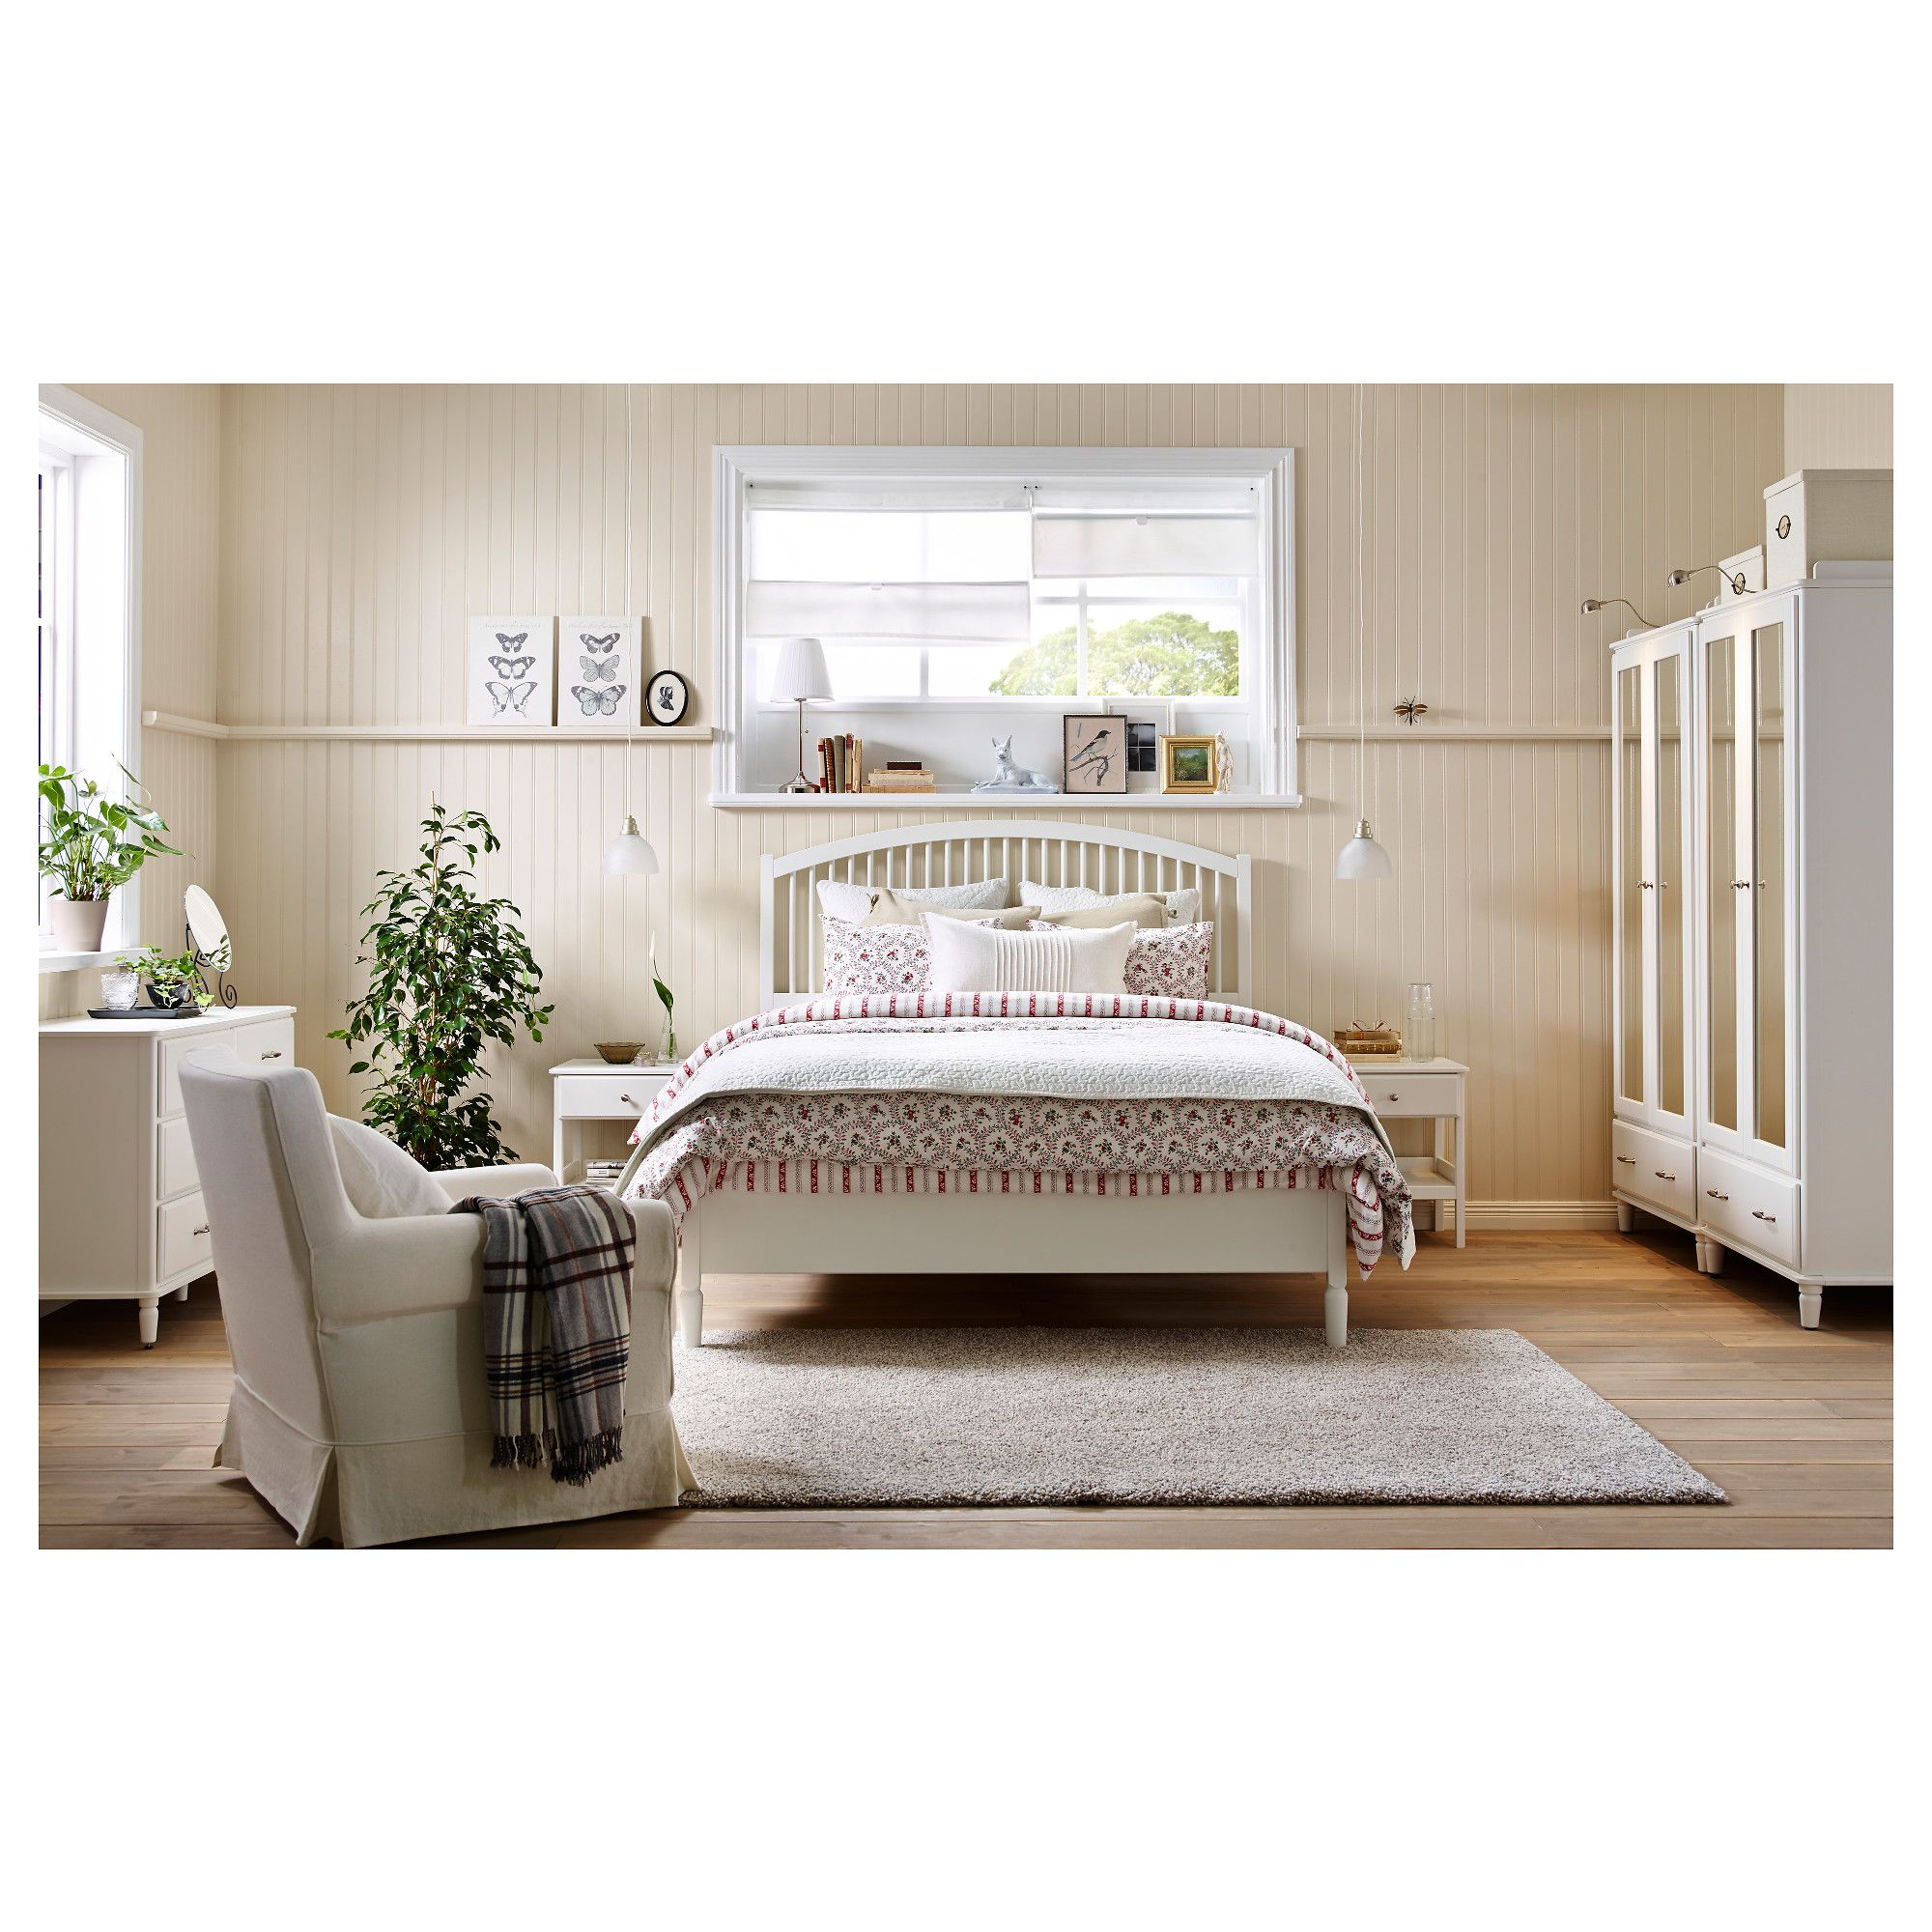 Ikea Us Furniture And Home Furnishings Cheap Furniture Stores Bedroom Sets Bedroom Design